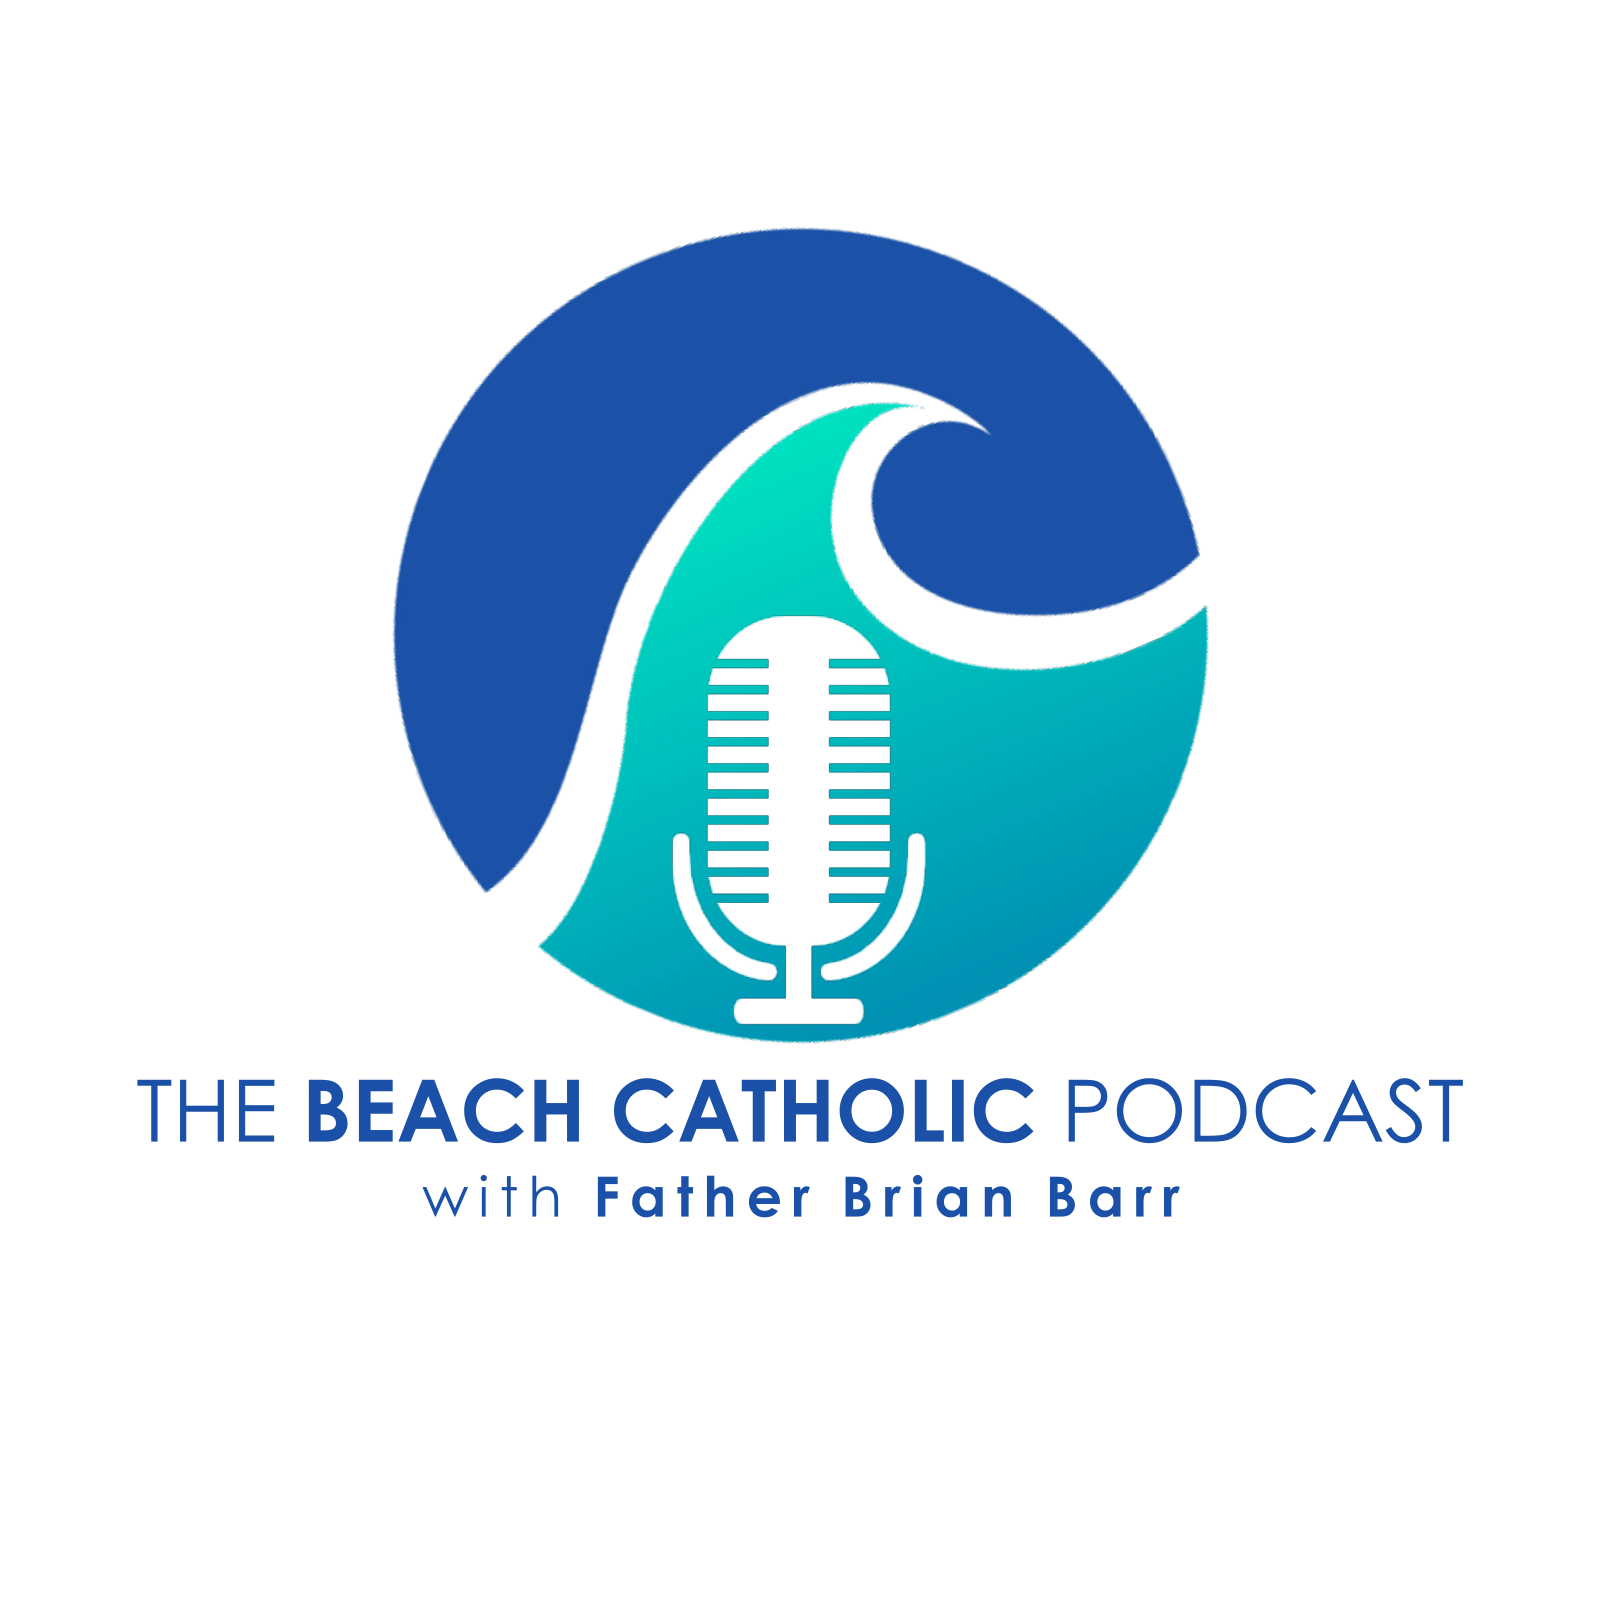 The Beach Catholic Podcast with Father Brian Barr